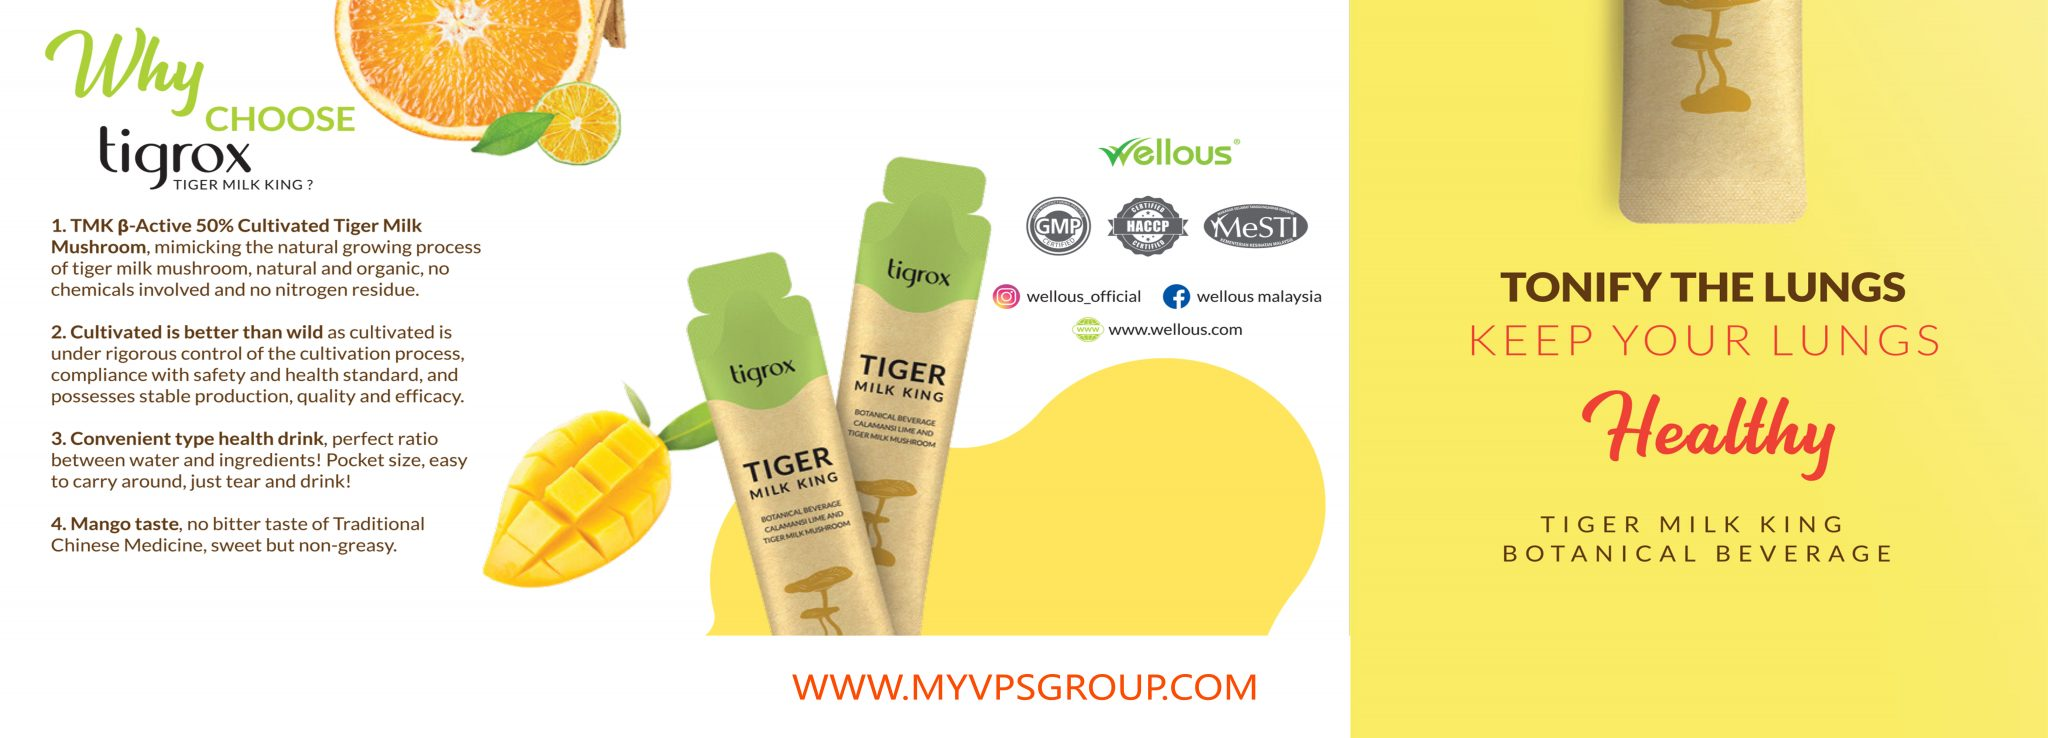 Wellouse-Singapore-MyVpsGroup-Malaysia-Digital-Marketing